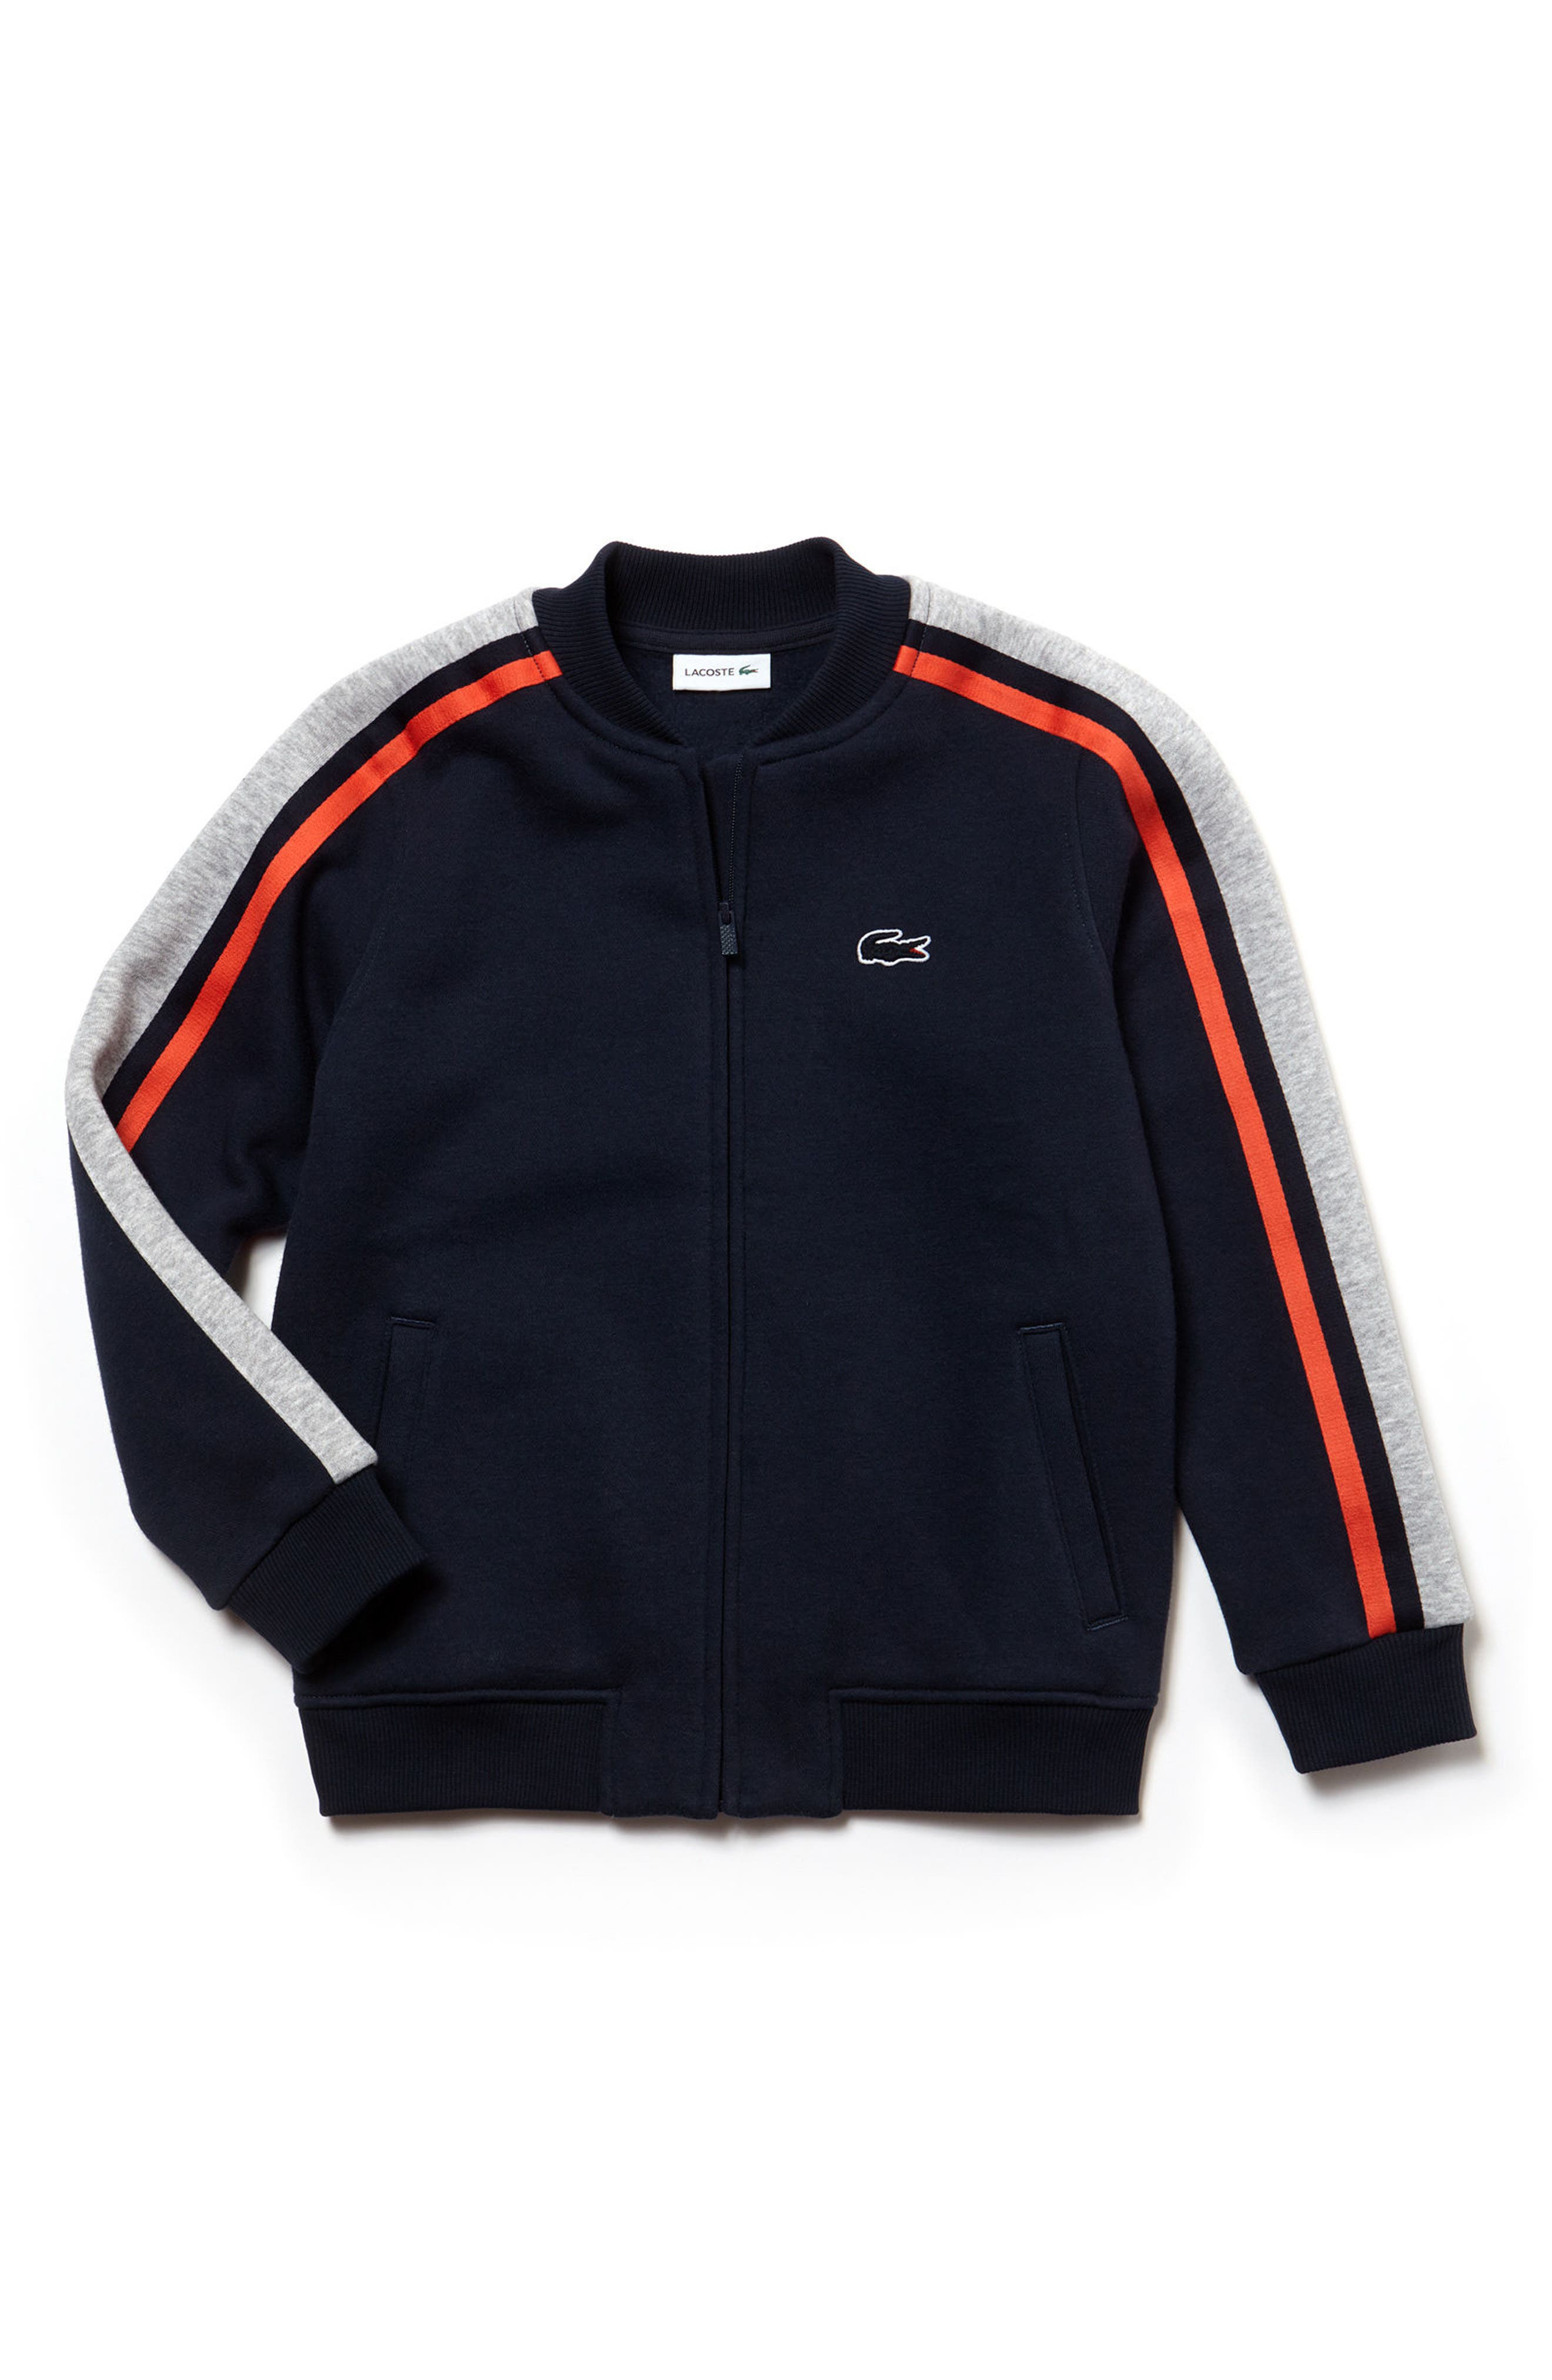 Stripe Zip Sweatshirt,                             Main thumbnail 1, color,                             Navy Blue/ Silver Chine